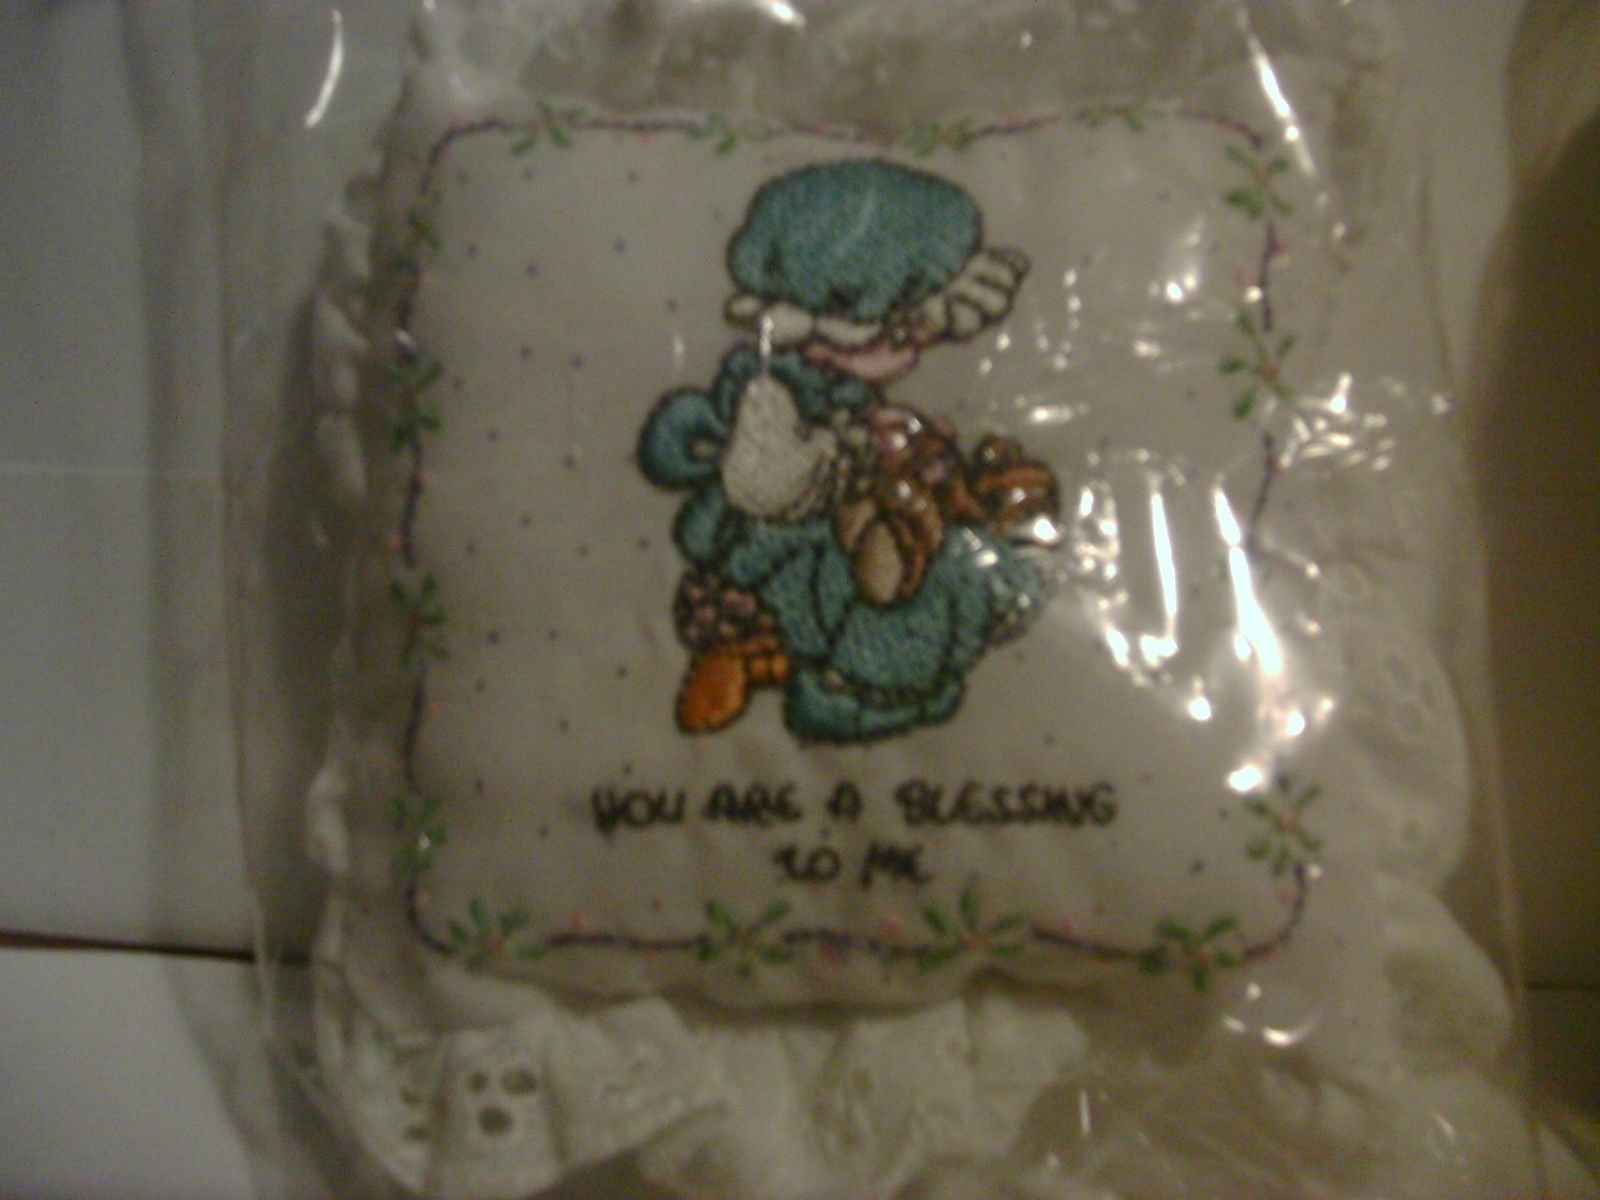 Precious Moments Pillows You Are A Blessing To Me 2 Mini Pillows image 2